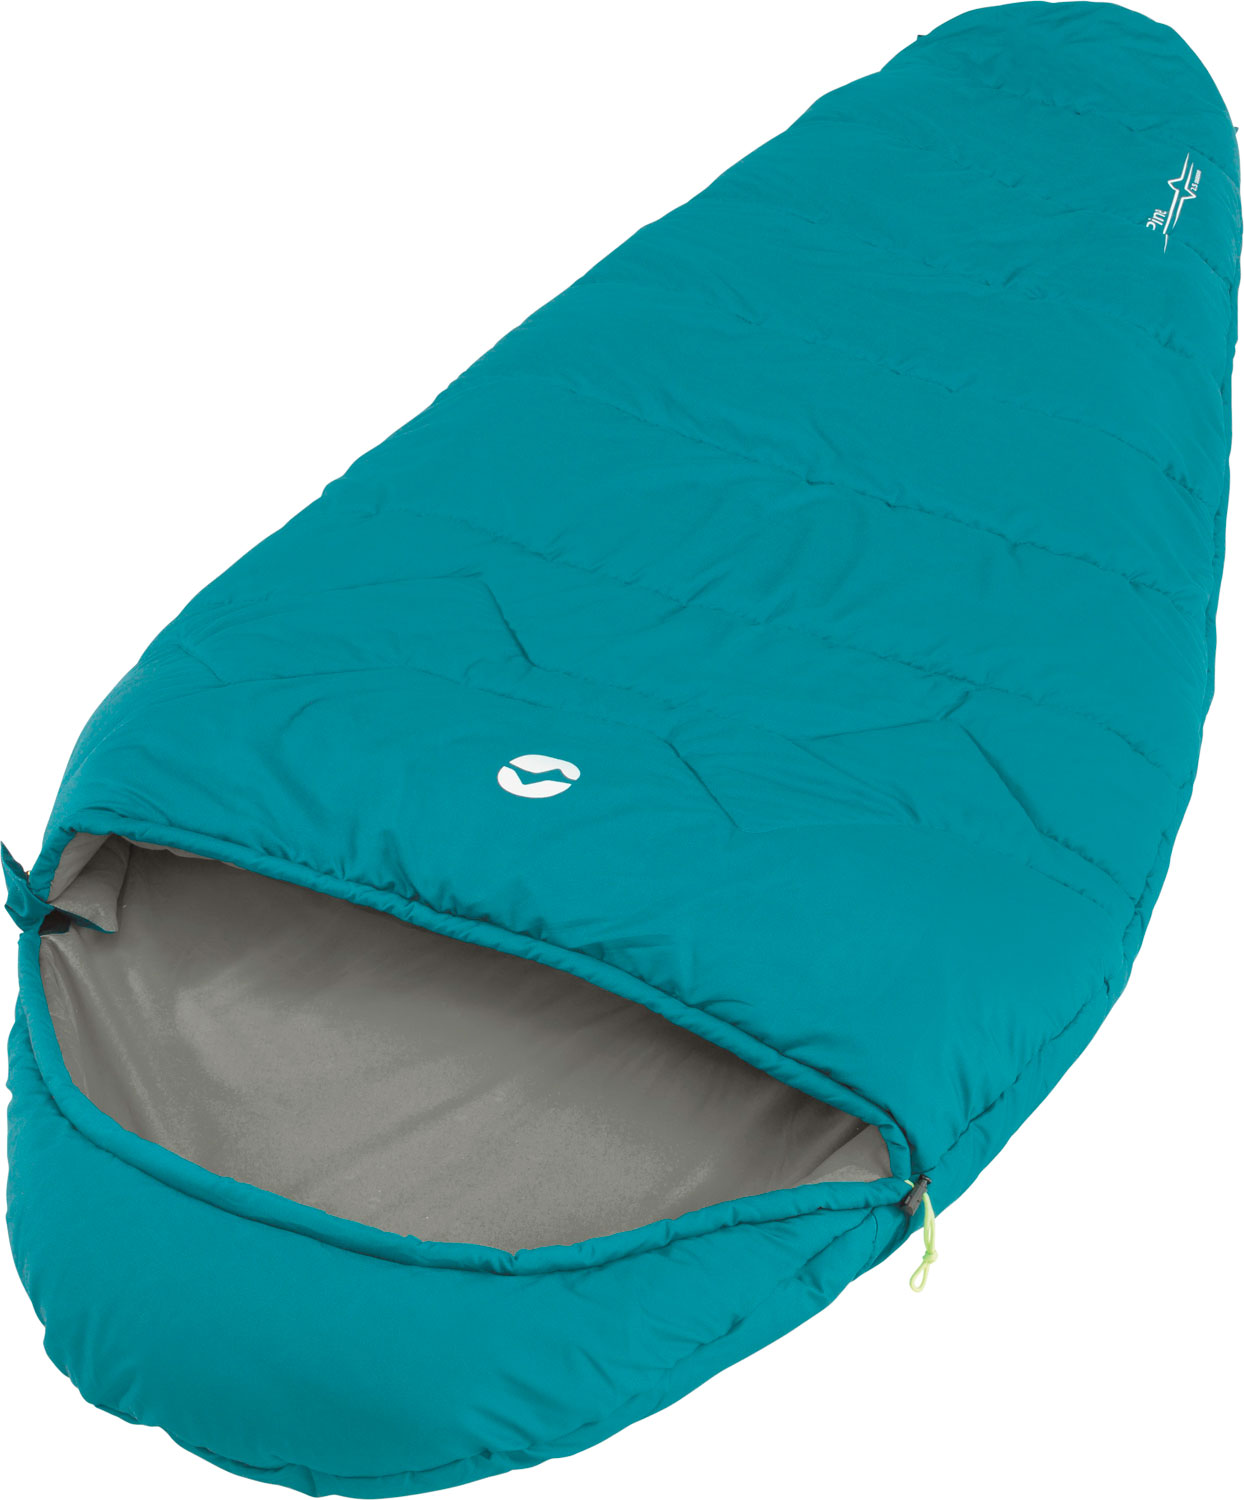 Outwell Pine Prime Mumienschlafsack